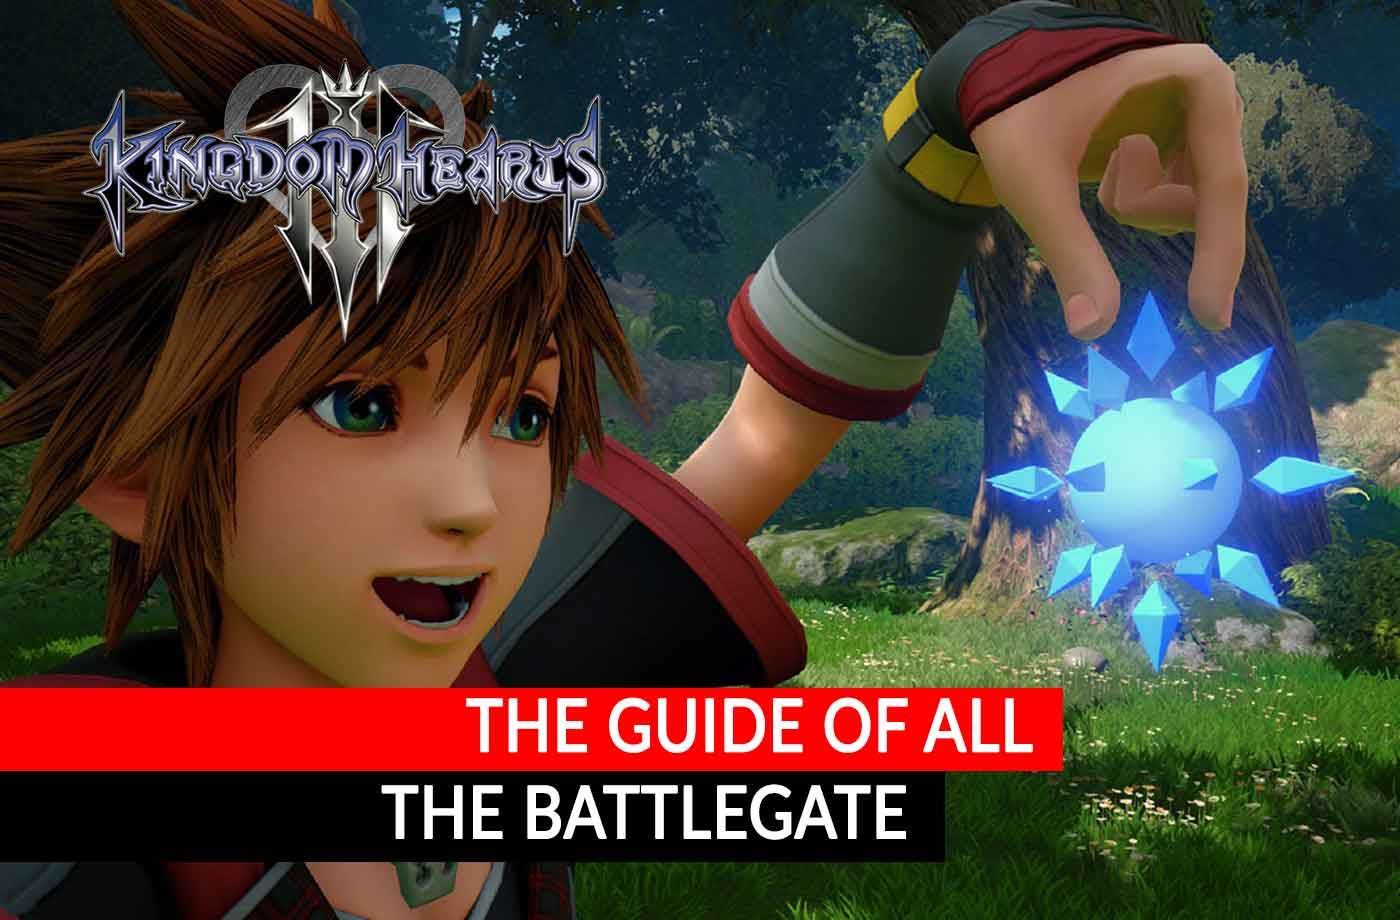 Guide Kingdom Hearts 3 List And Locations Of All Battlegate With Secret Reports Kill The Game